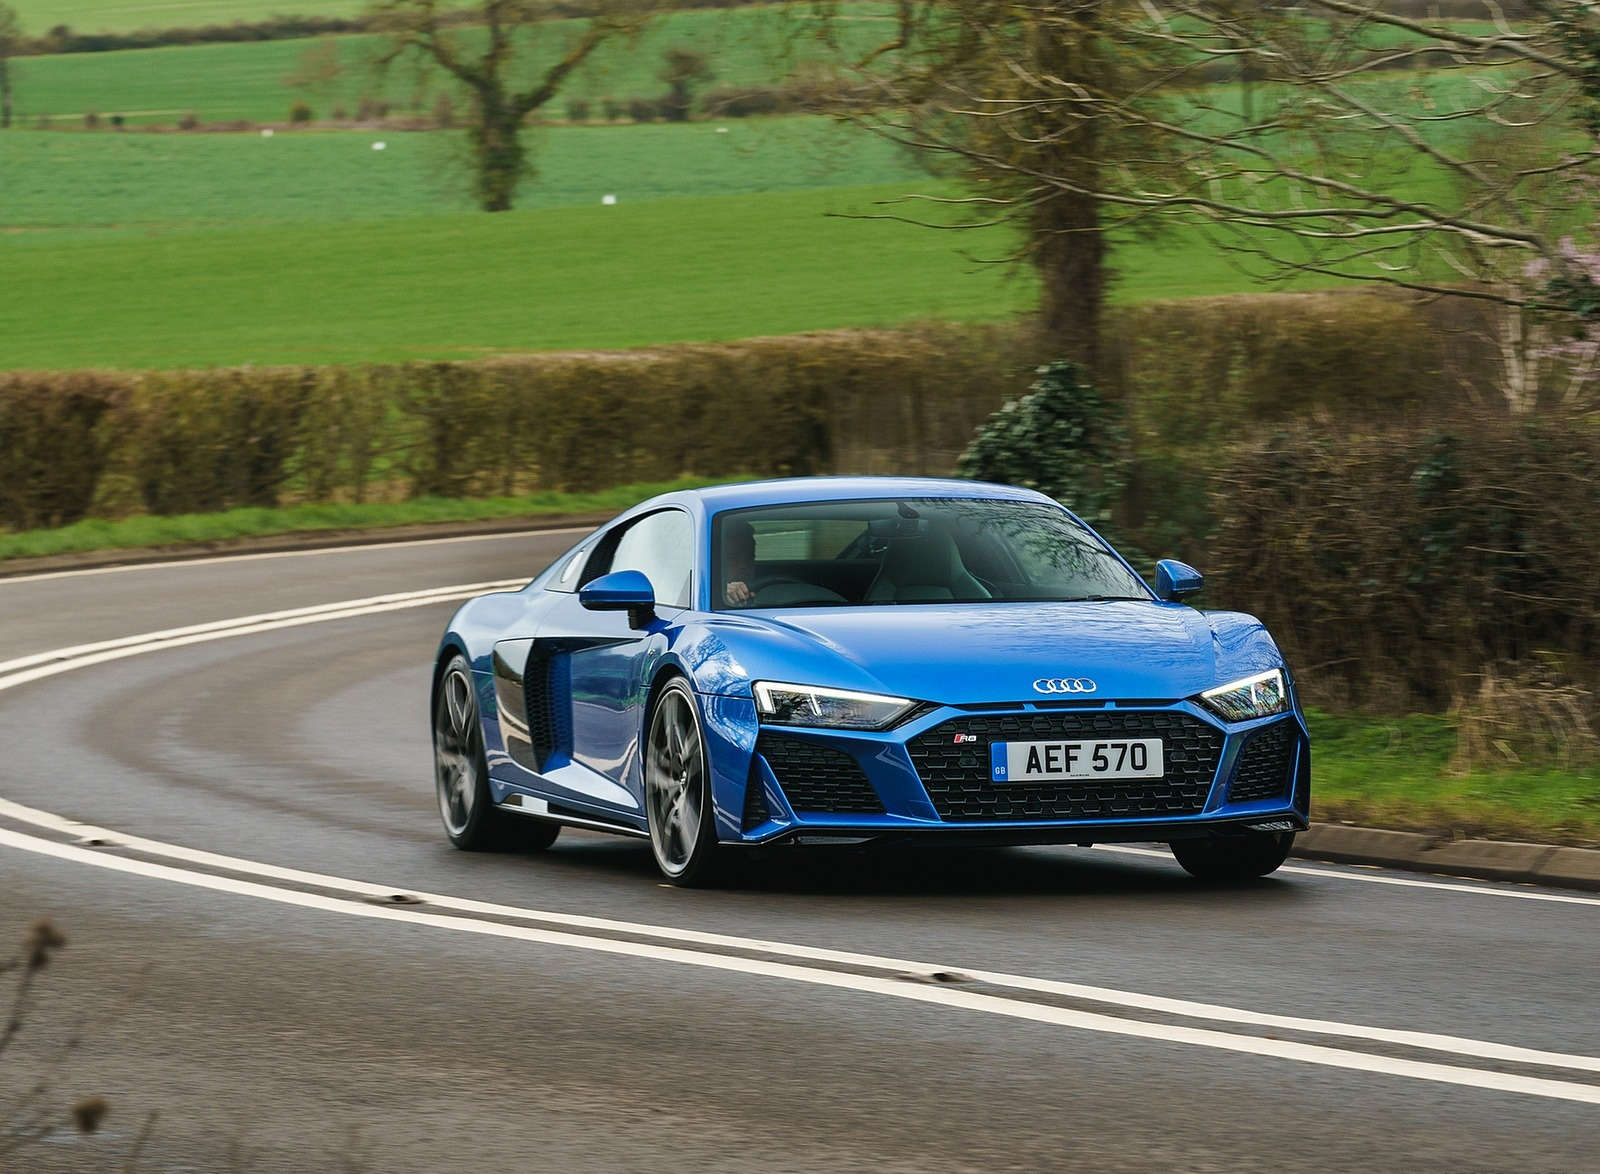 2019 Audi R8 V10 Coupe quattro (UK-Spec) Front Three-Quarter Wallpaper (8)